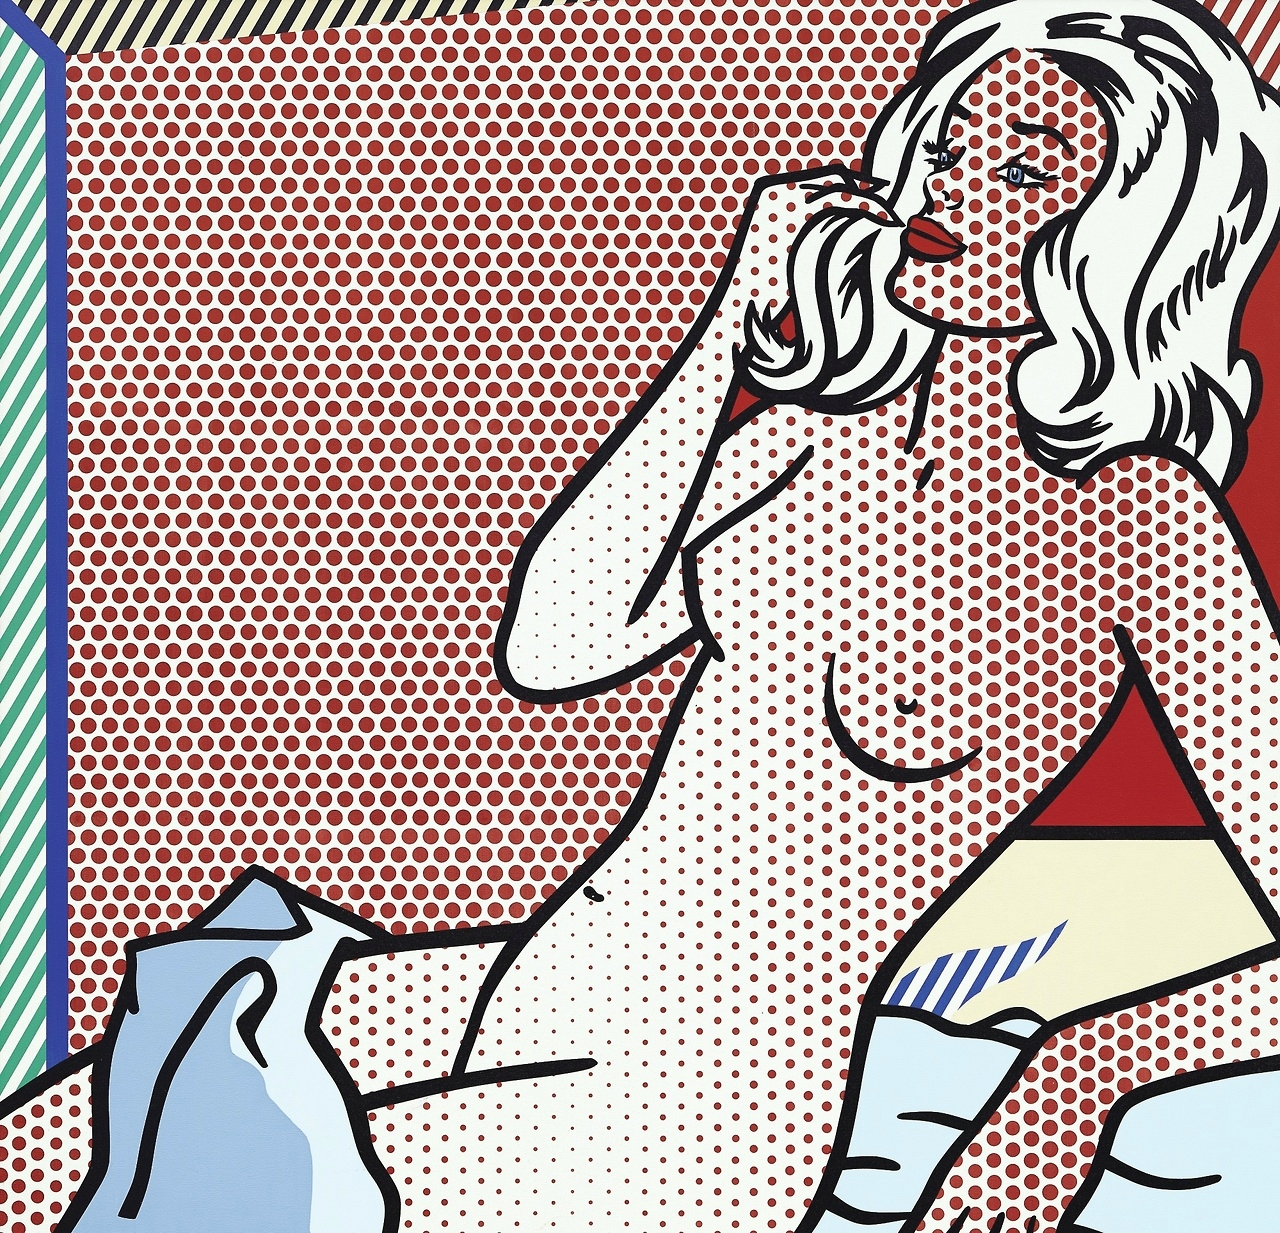 Roy Lichtenstein (1923 - 1997), Nude Sunbathing